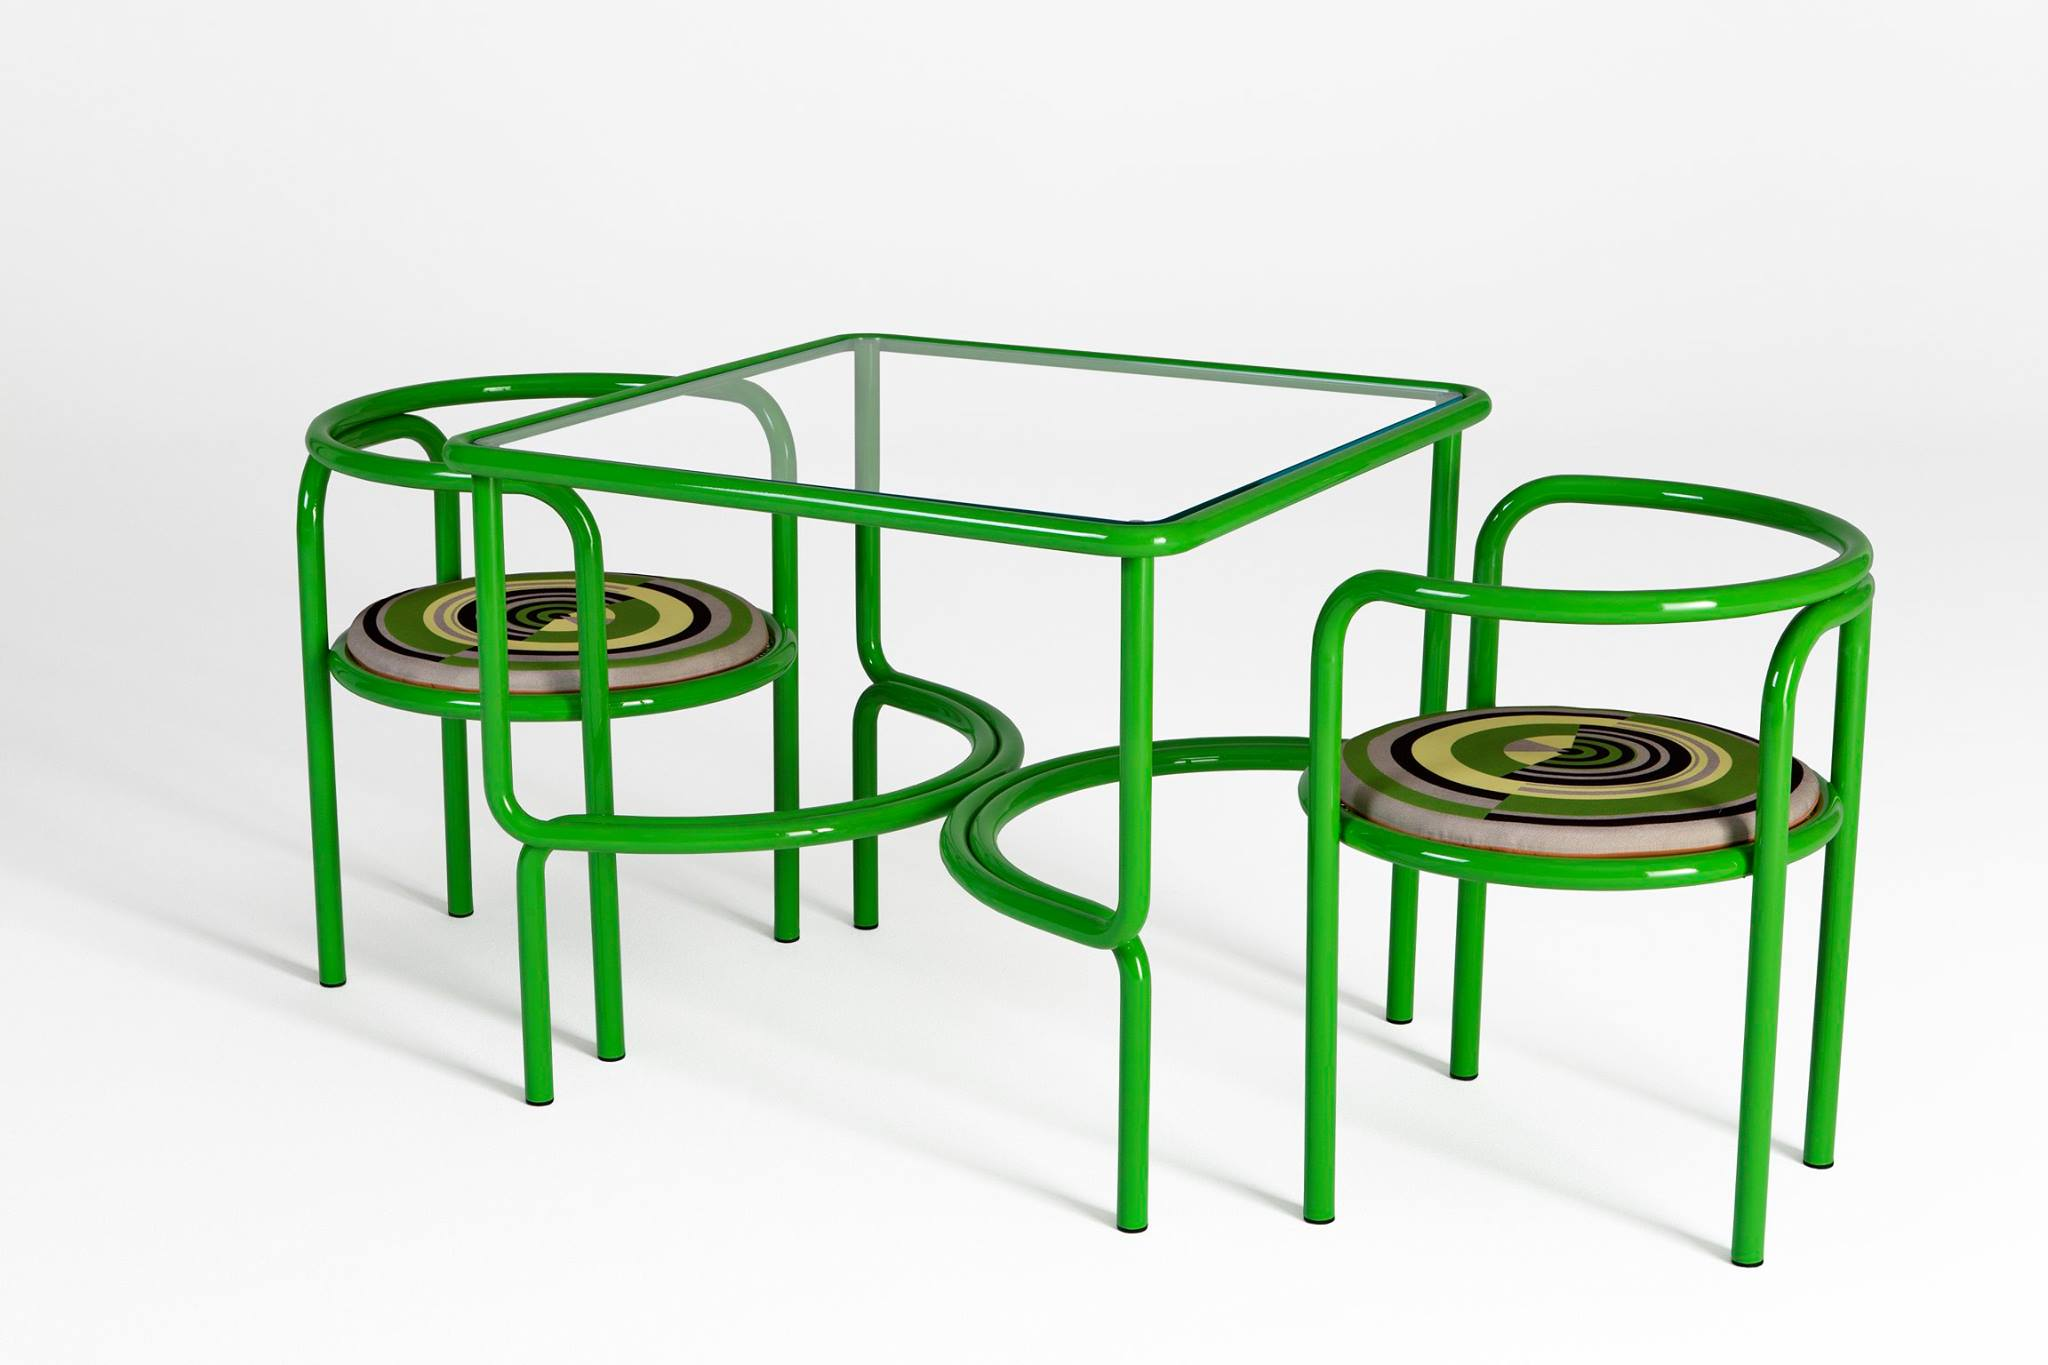 Locus Solus Dining Table and Chairs  -  Inquire